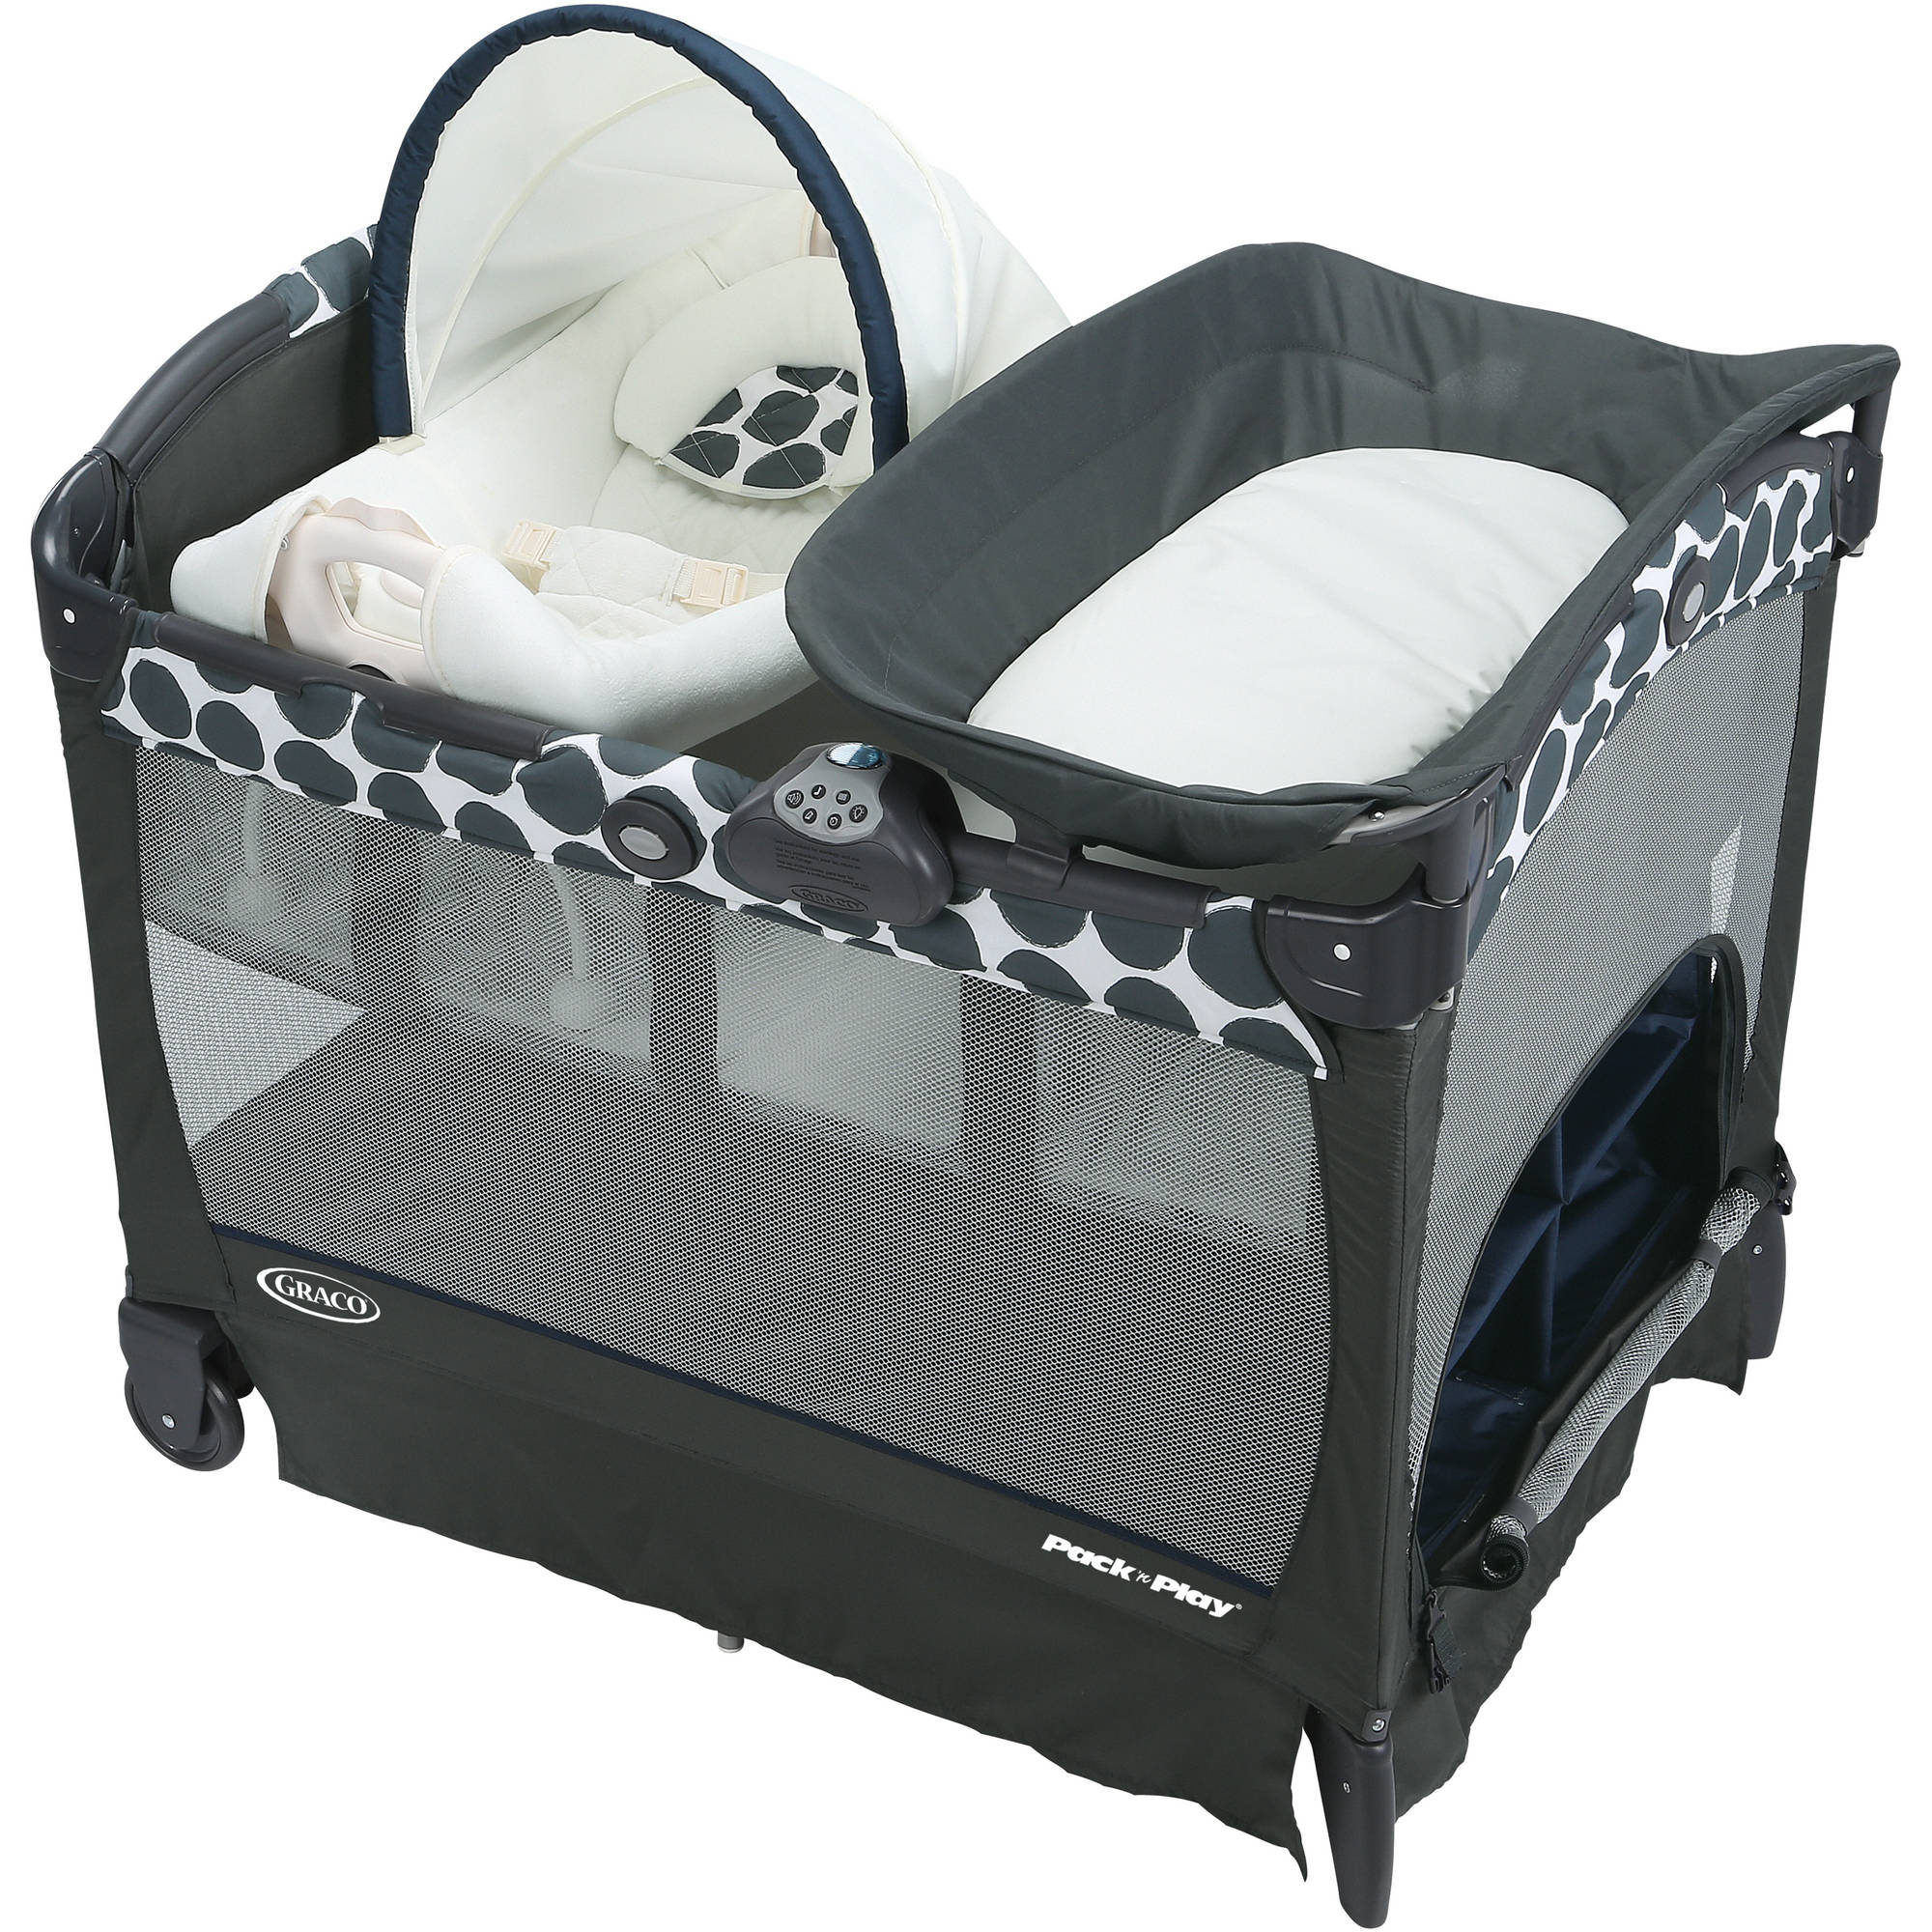 Graco Pack 'n Play Playard with Cuddle Cove Removable Seat, Navy Motif